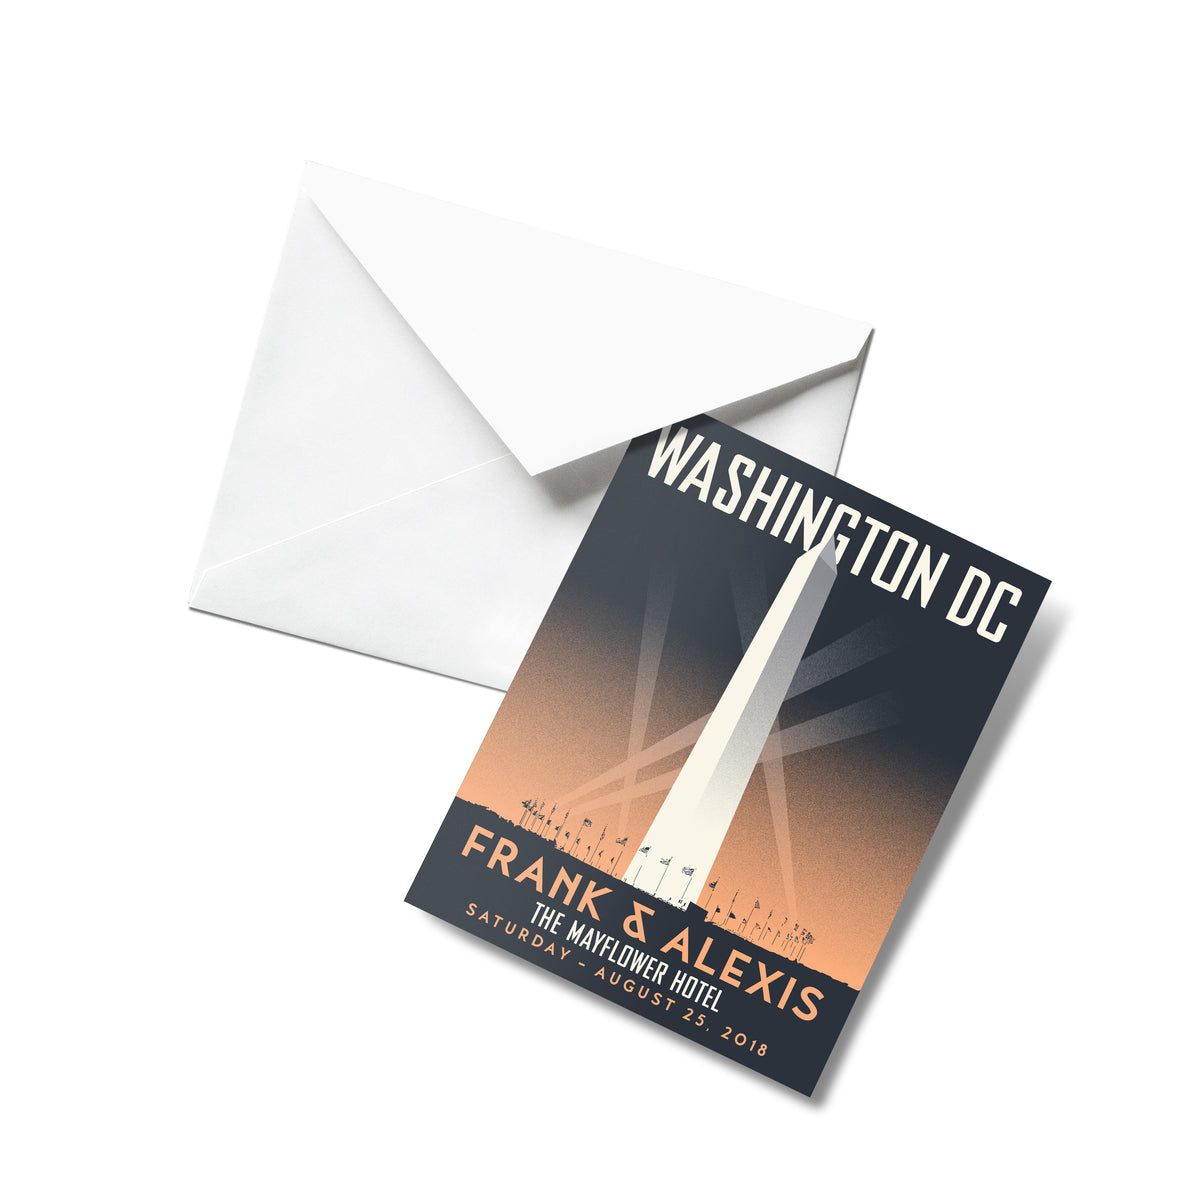 Washington Monument Thank You Cards